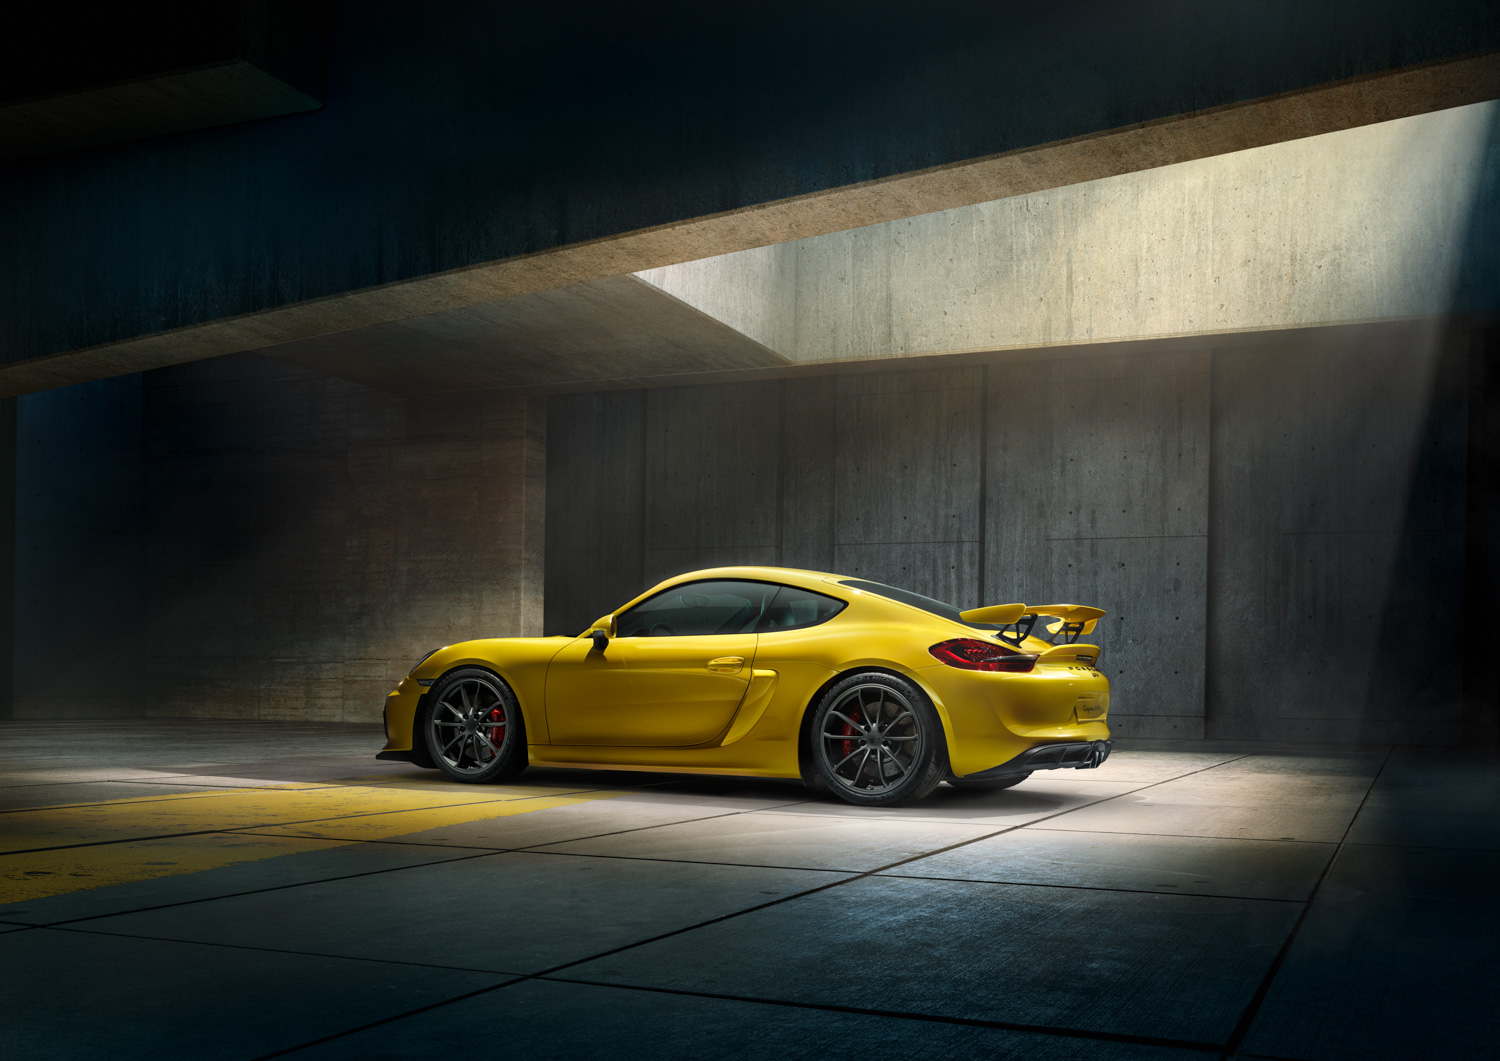 Making Of : Porsche Cayman By Thomas Strogalski